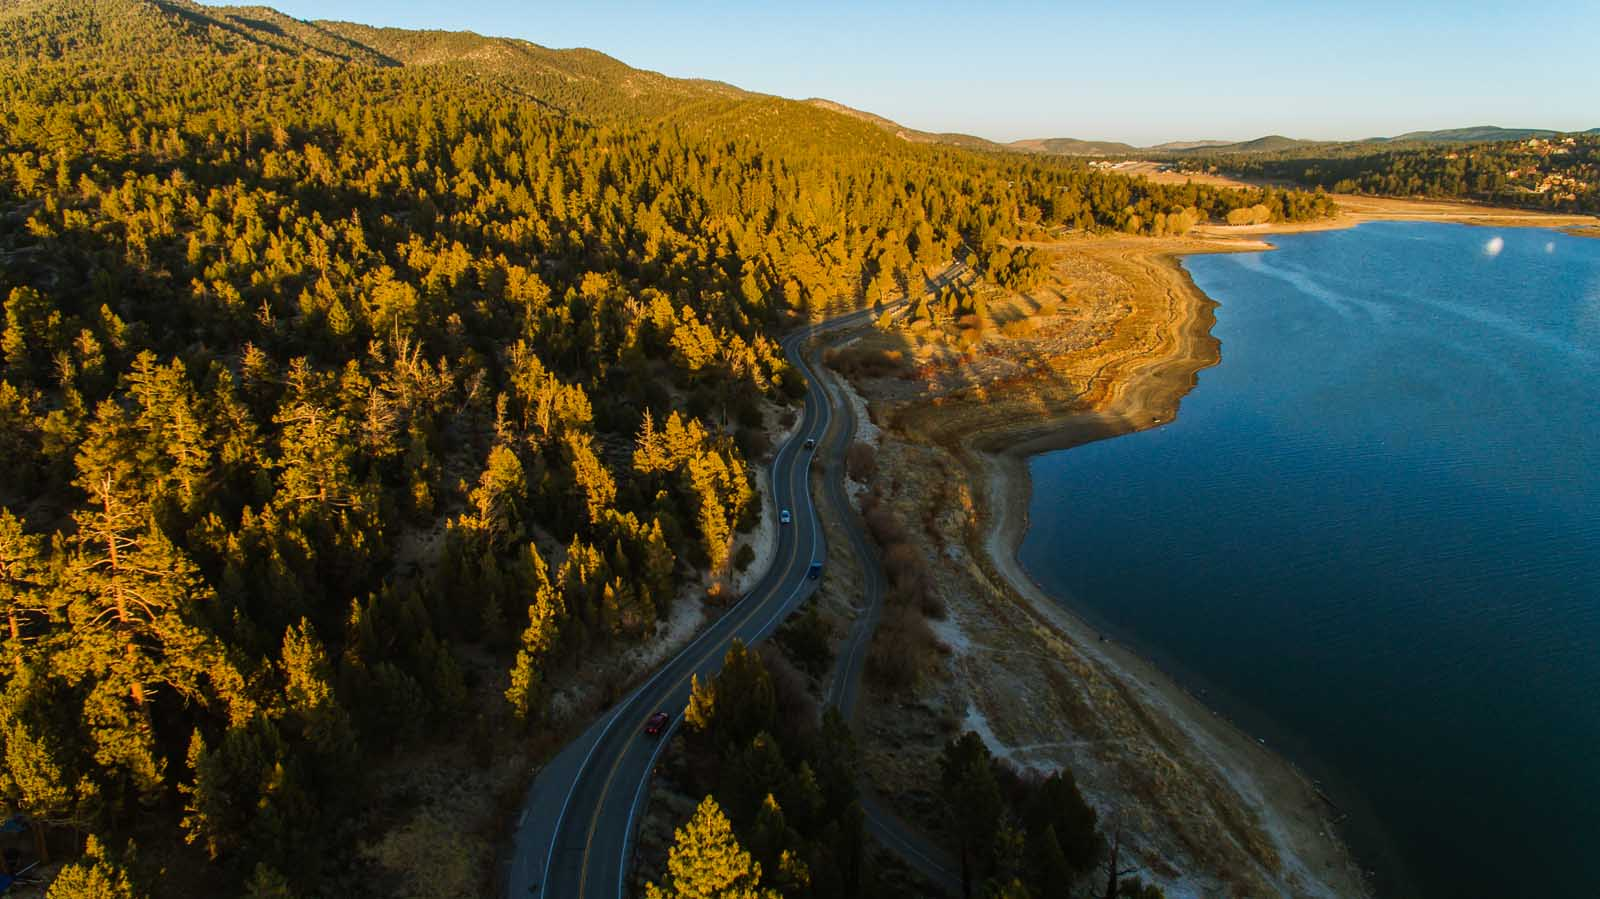 View of Big Bear Lake from Drone